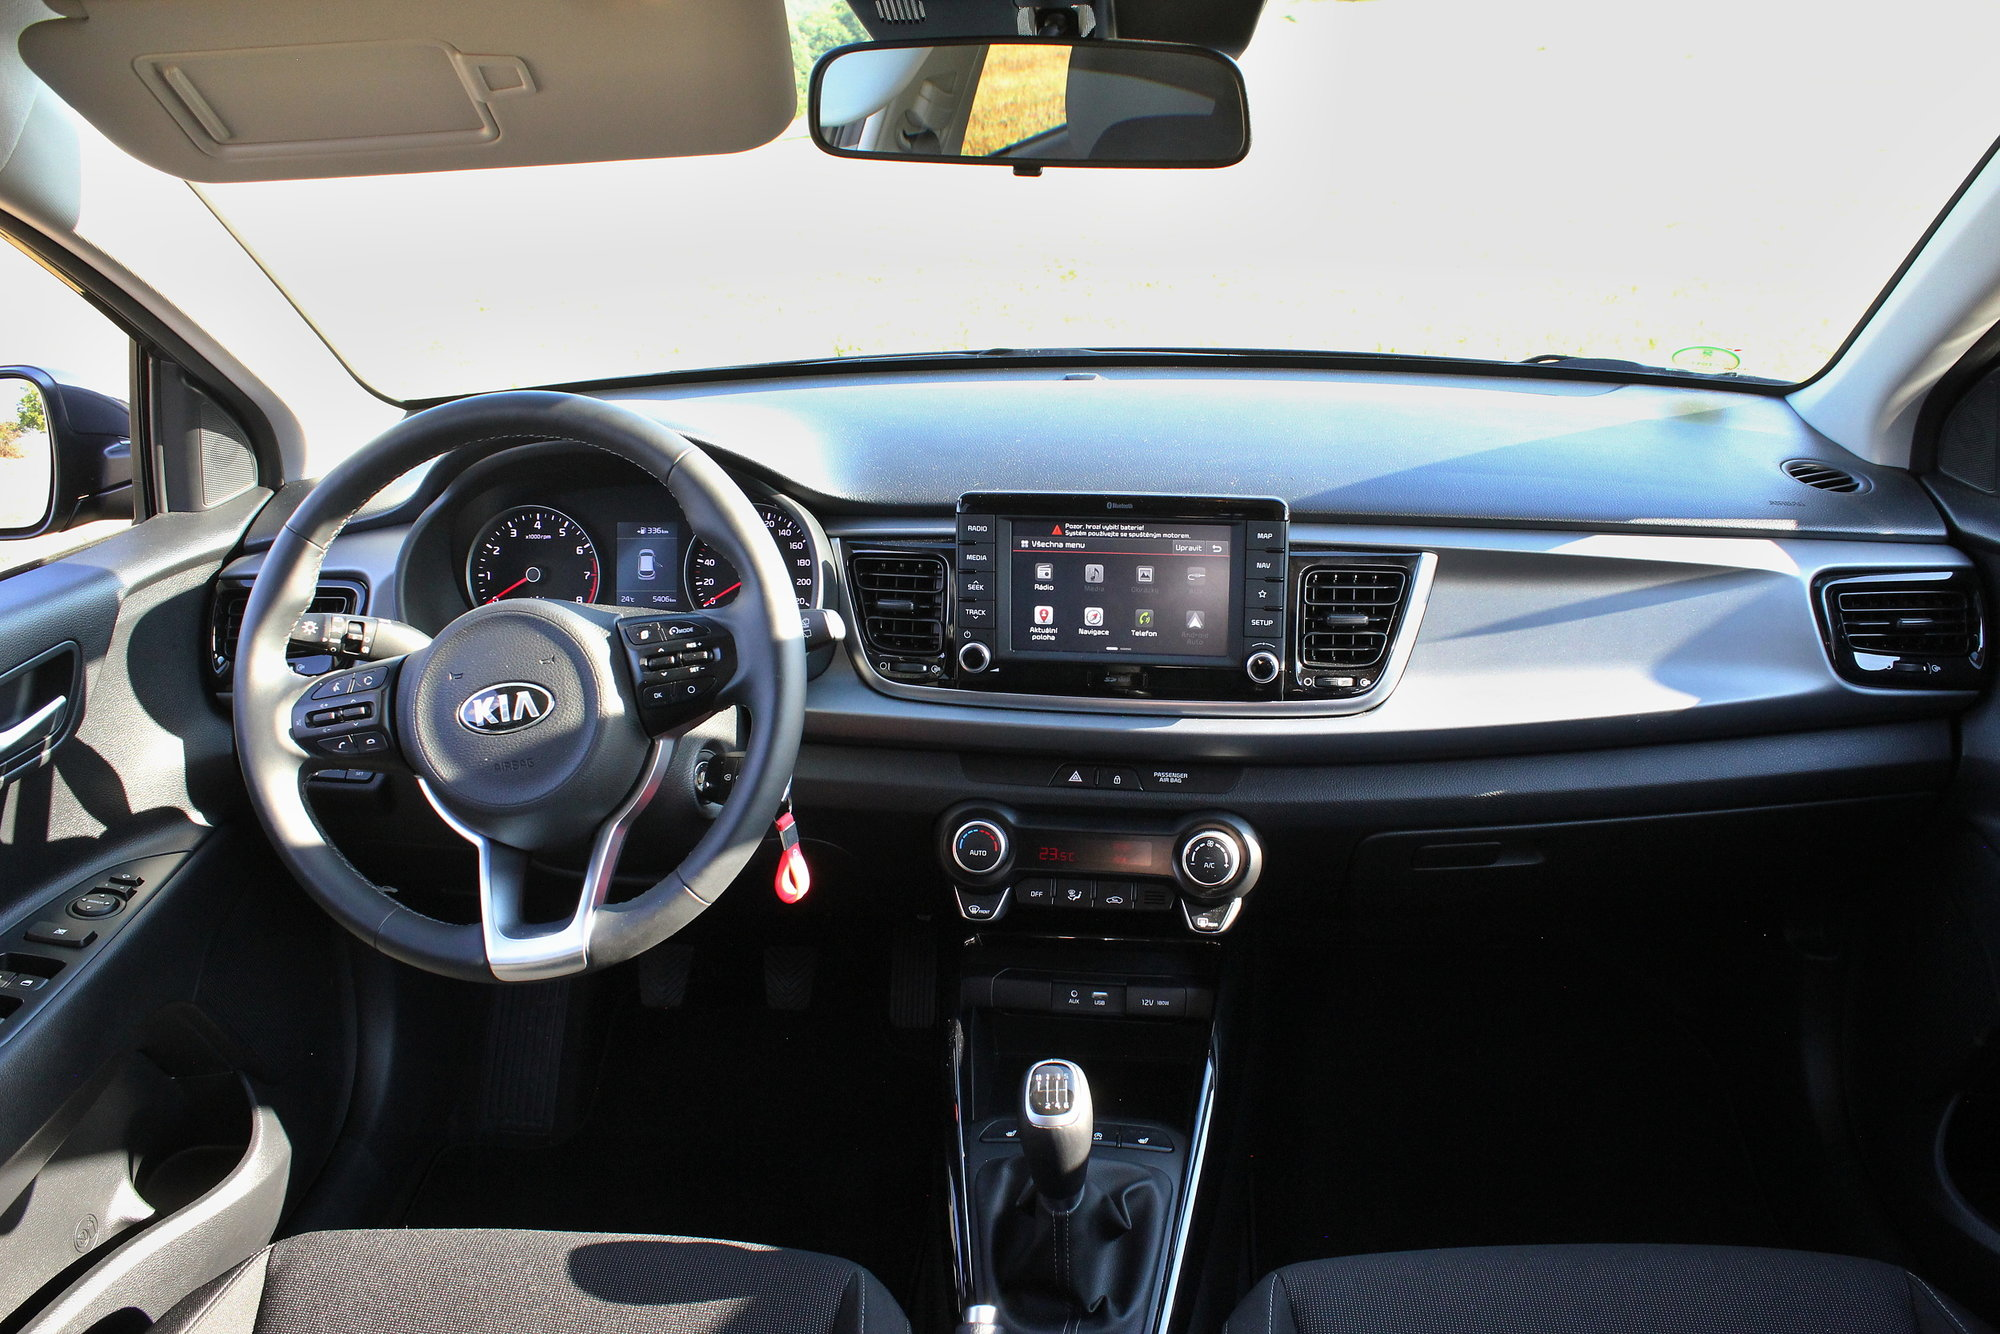 Test vozu Kia Rio 1,4CVVT Exclusive